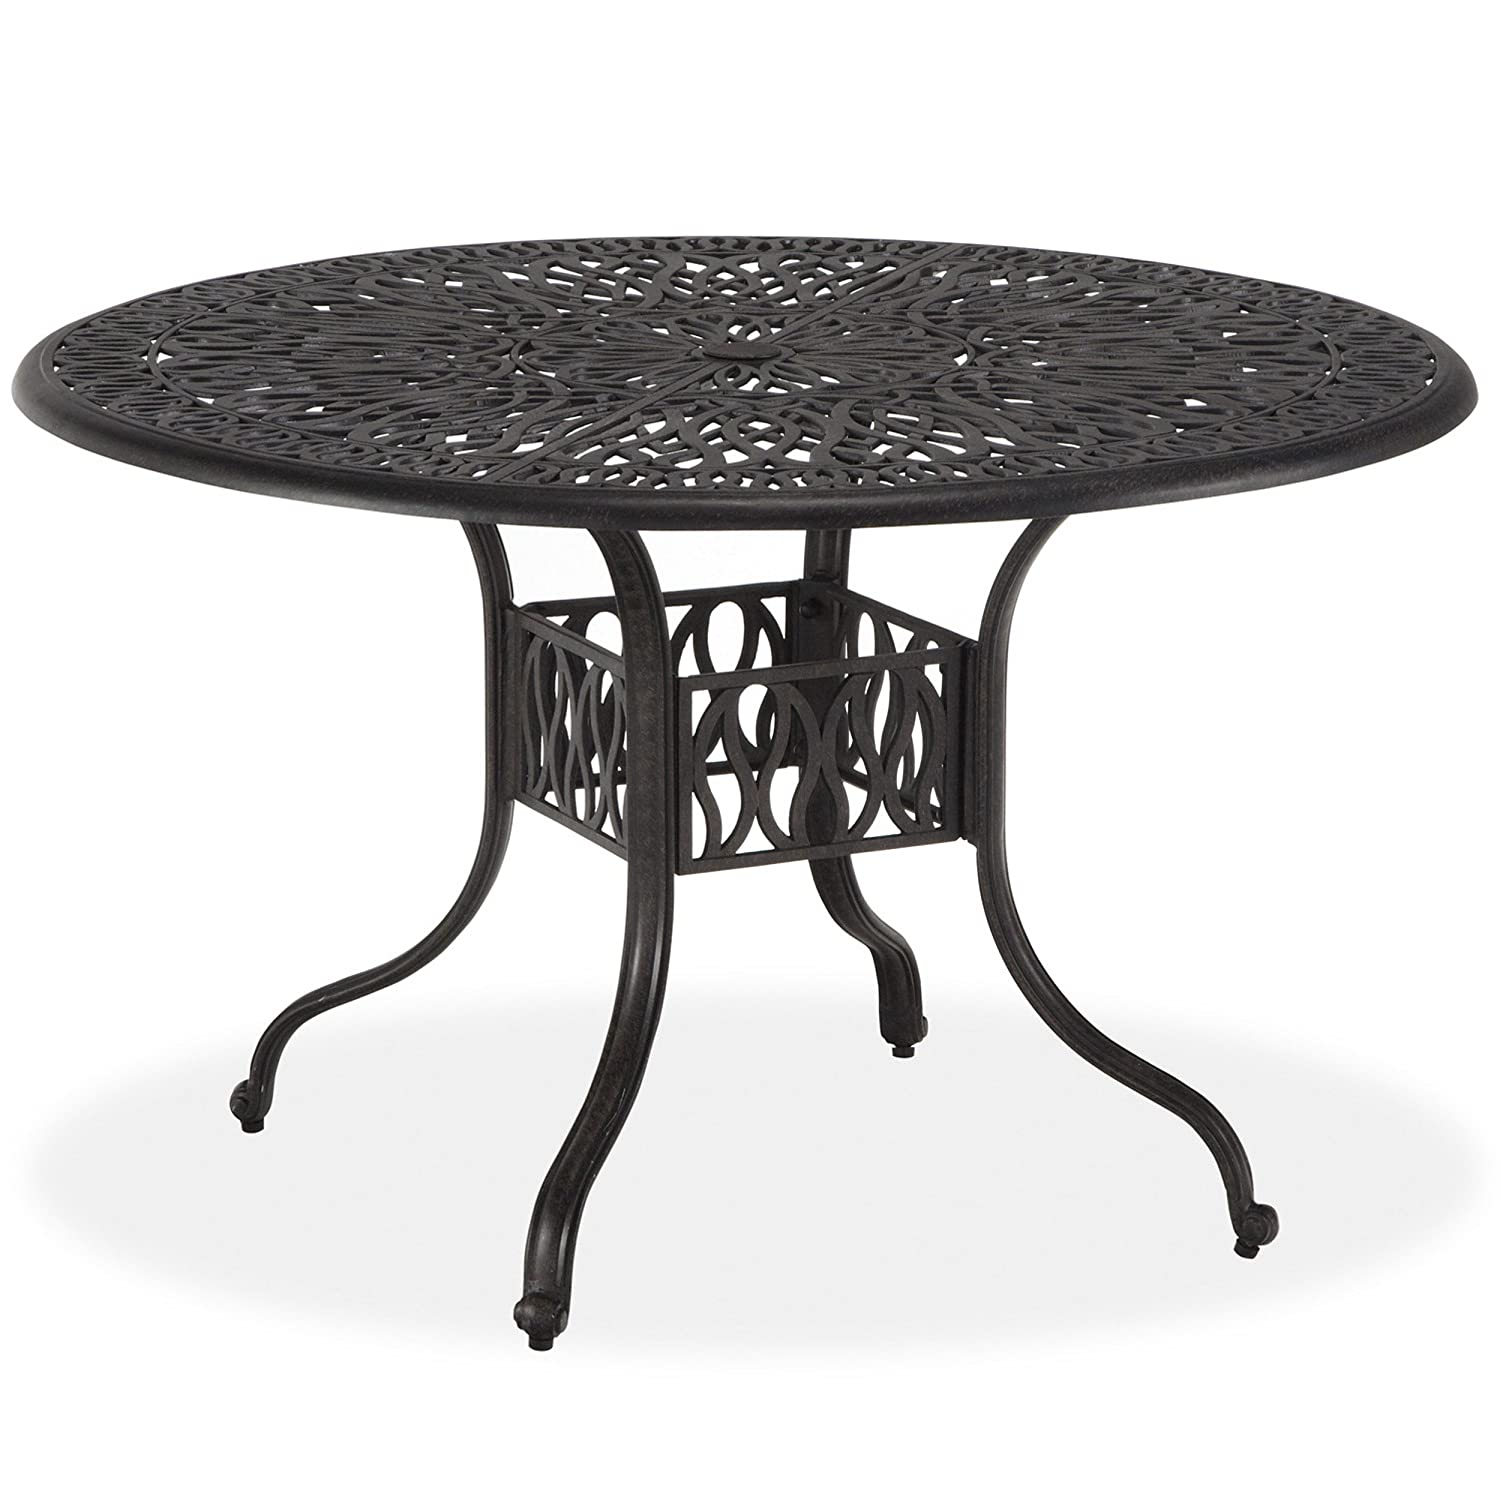 Amazon.com: Dining Tables: Patio, Lawn & Garden